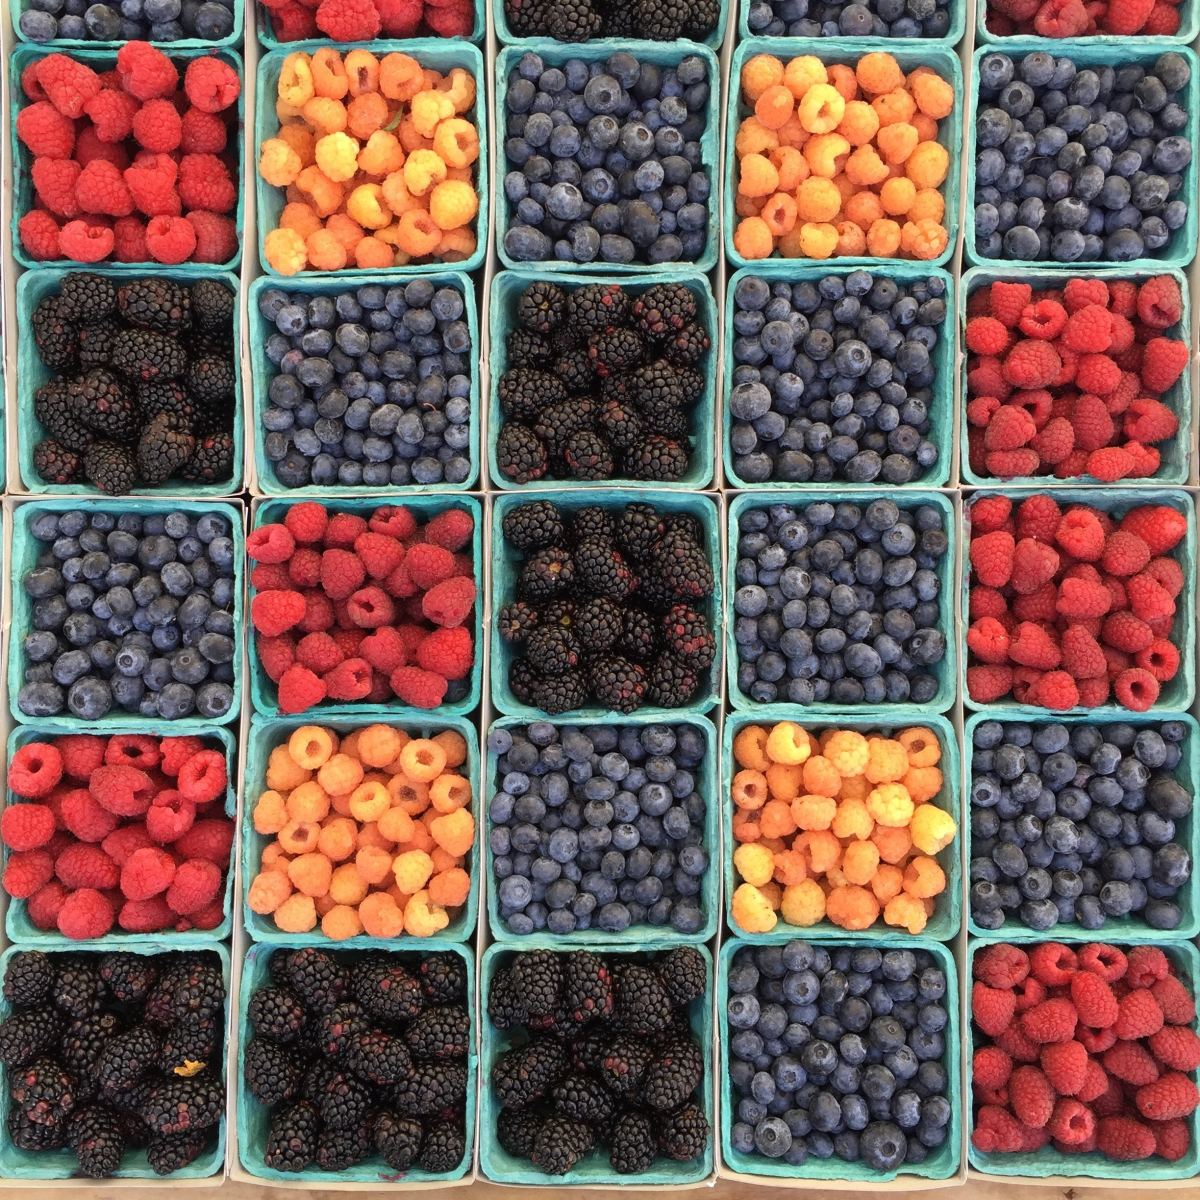 Fresh Berries and Bagged Salads Top Organic Produce Sales